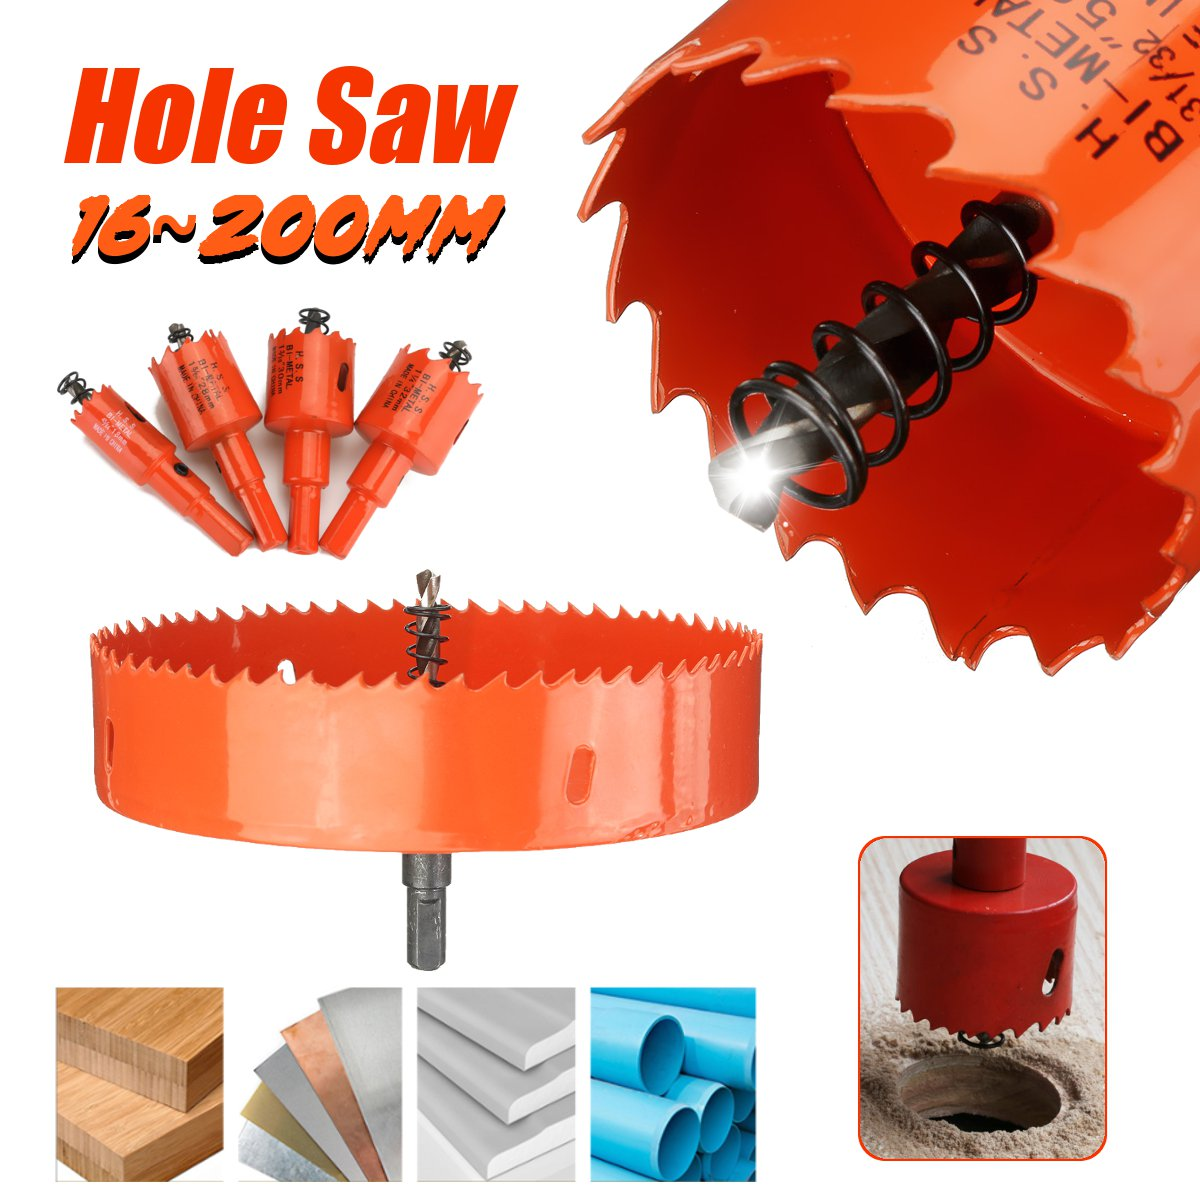 Red 16-200mm HSS Bi-Metal Wood Hole Saw Cutter Tooth Cutter Drill Bit For Woodworking DIY Wood Cutter Drill Bit Set PVC Plastic